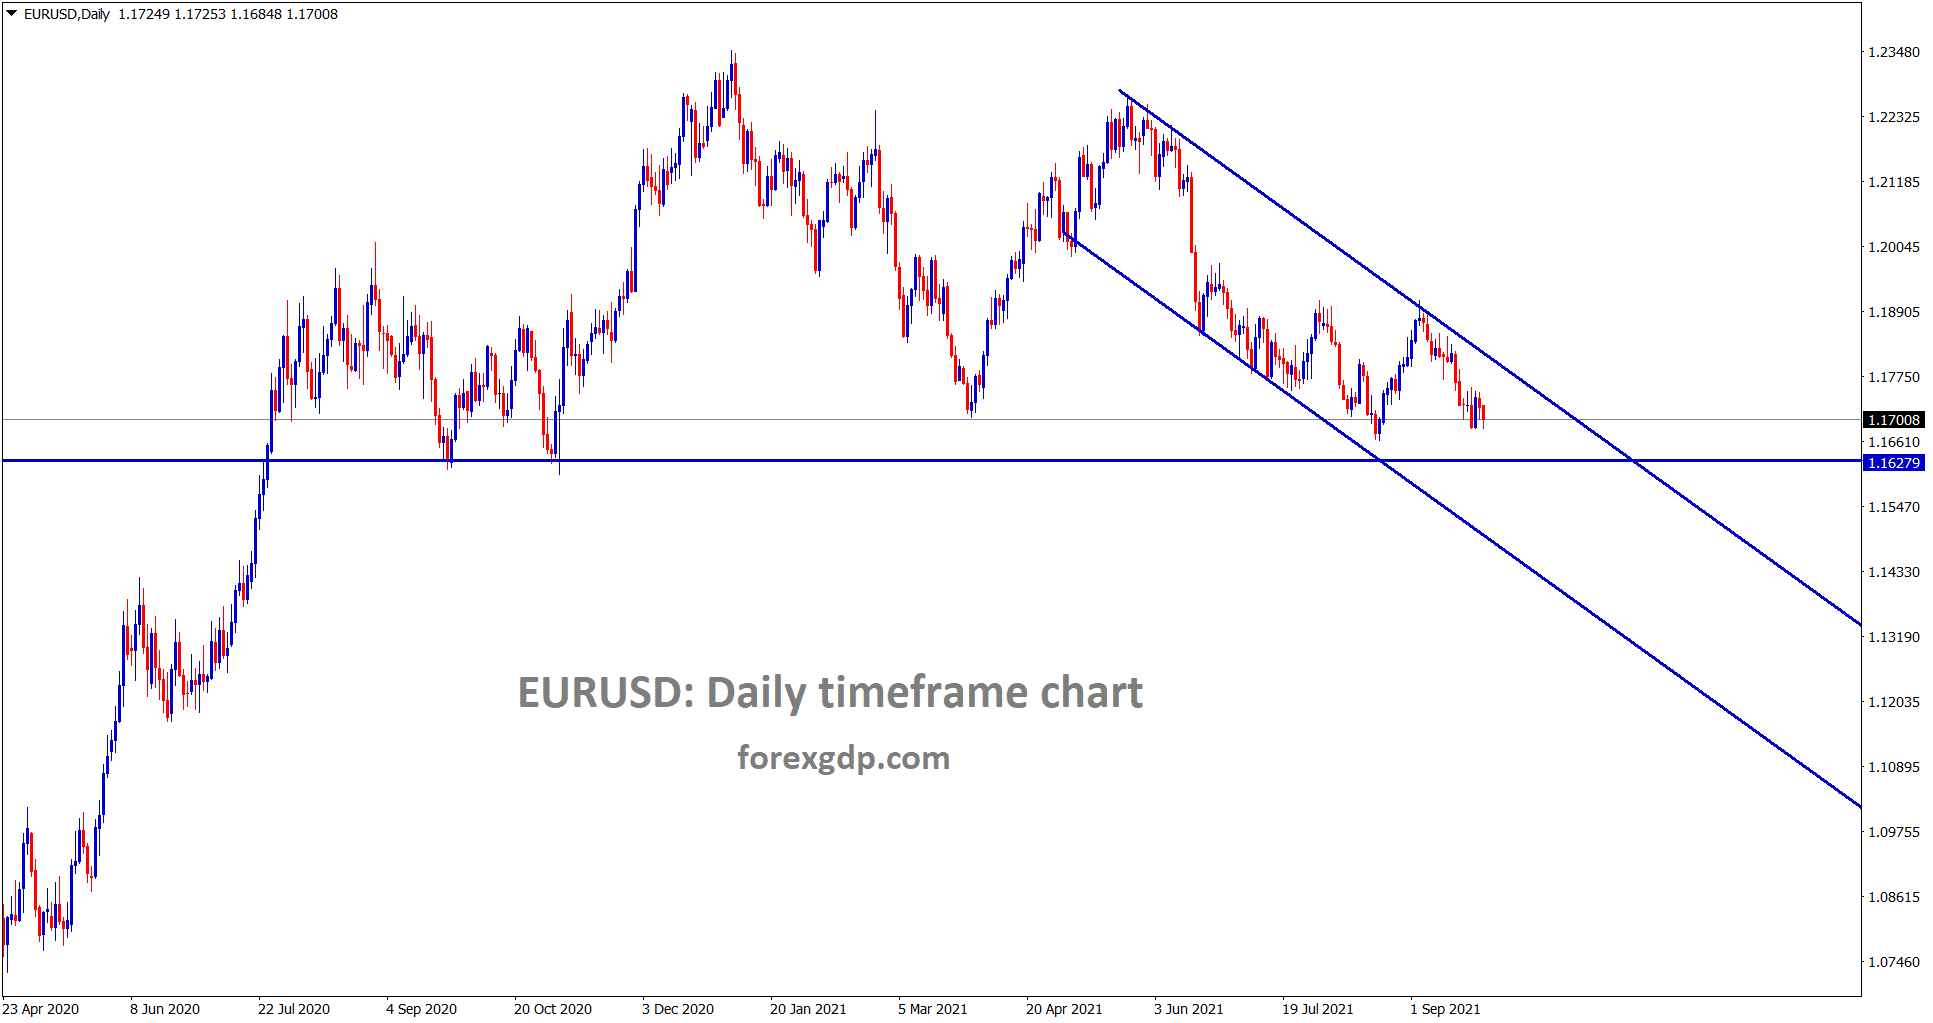 EURUSD is moving in a downtrend line heading towards next support zones.